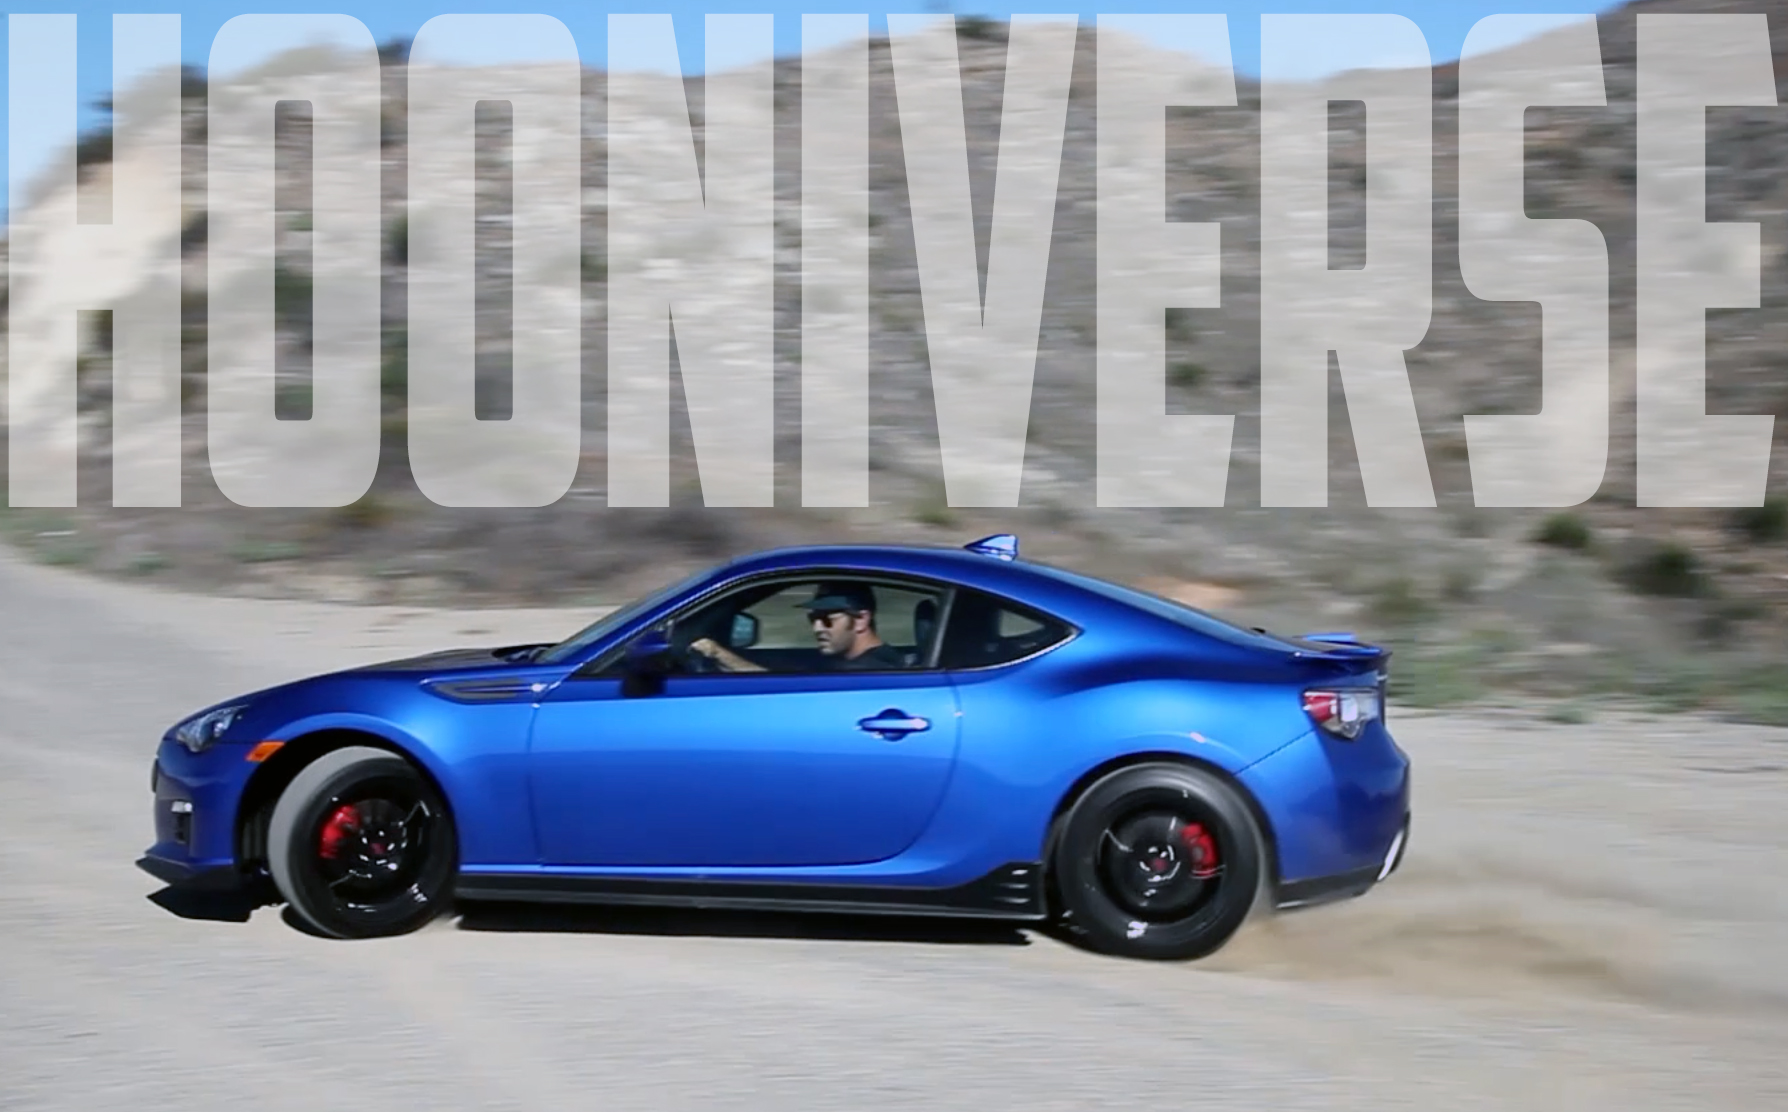 The Subaru Brz Isn T A Miata And That S A Good Thing Video